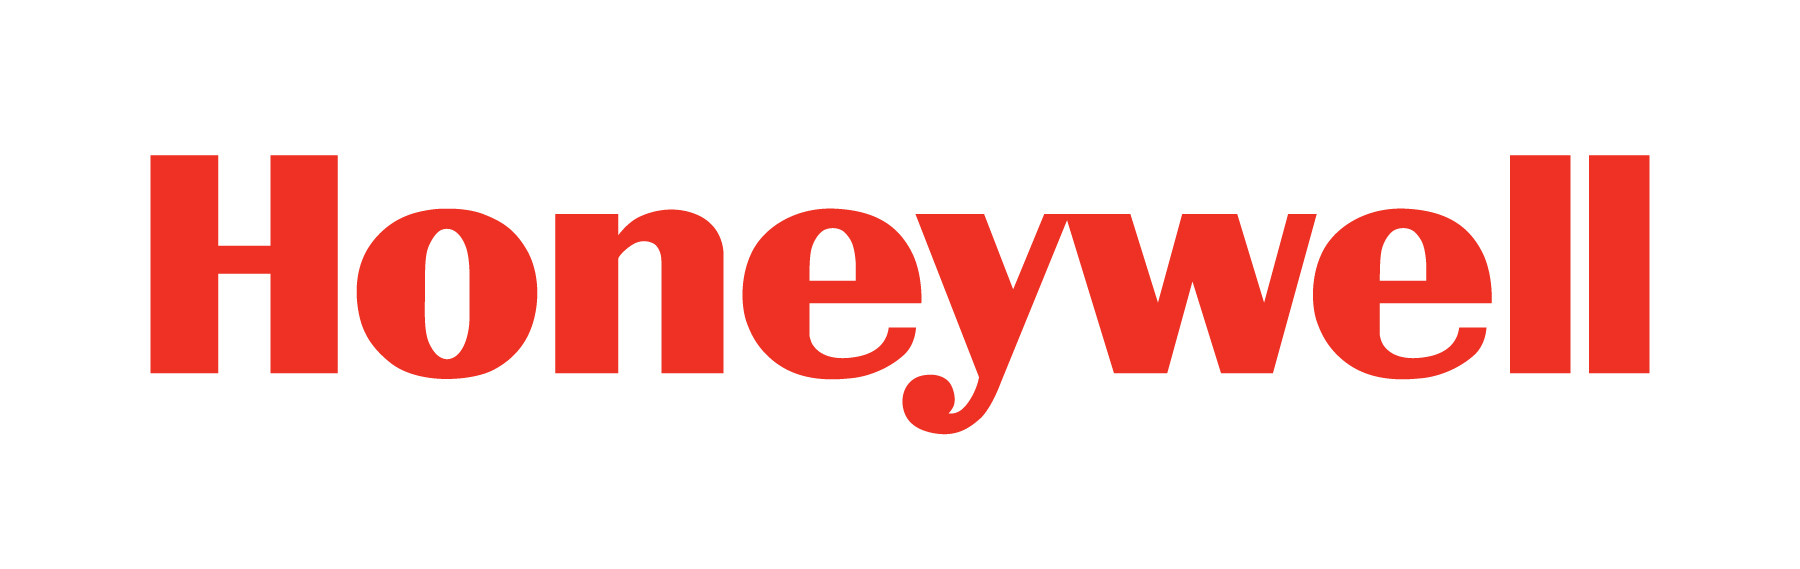 Honeywell Commercial Security Company Logo